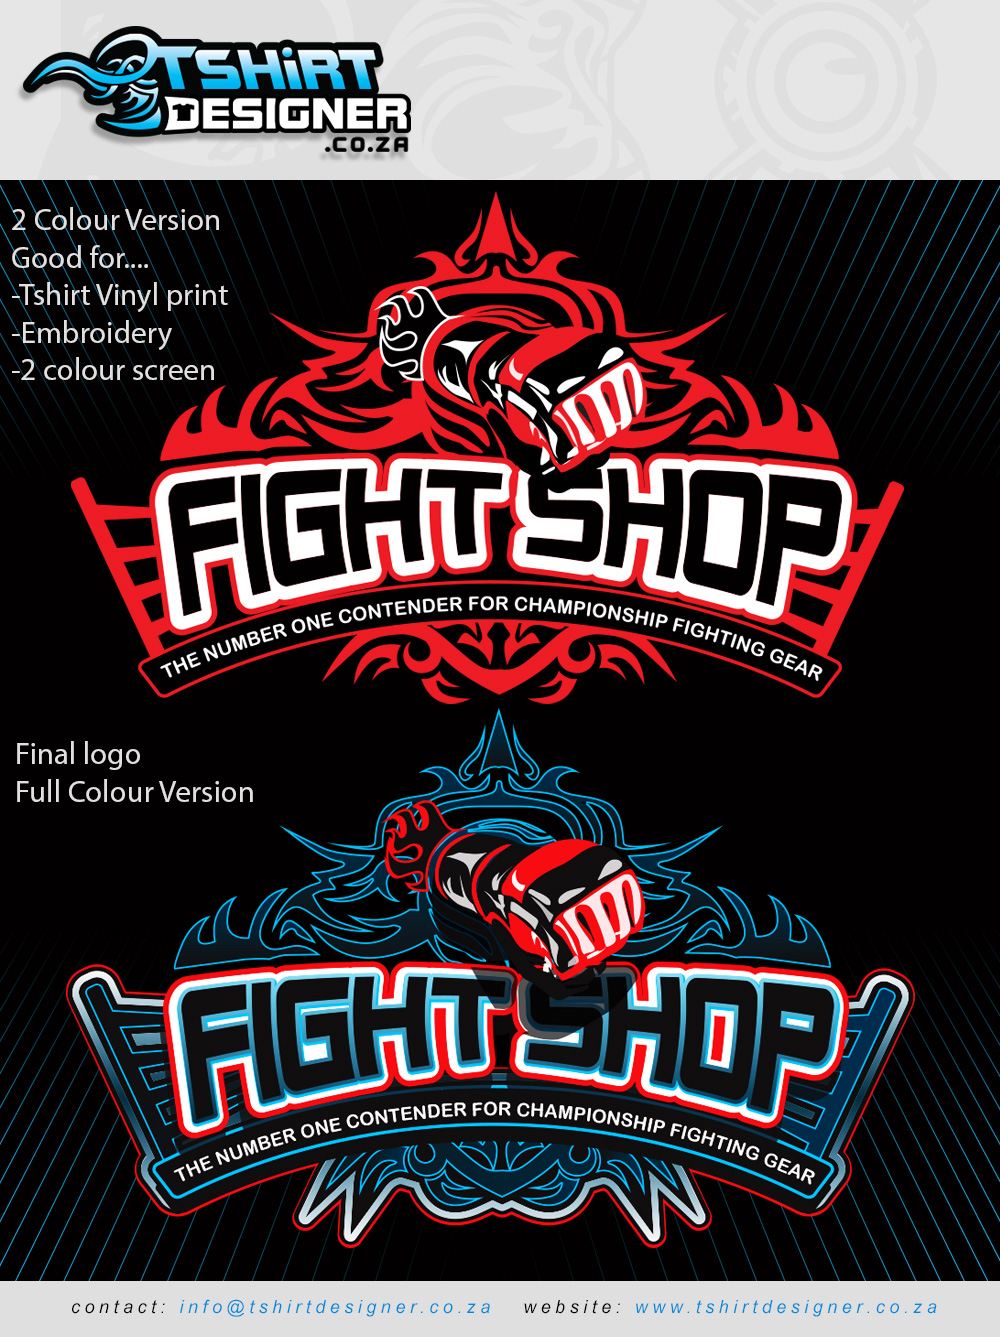 2 colour design, 2 colour print, 2 colour printing, 2 color, 2 color design, 2 color logo design, 2 color tshirt printing, fight shop logo design, fist logo, tribal logo